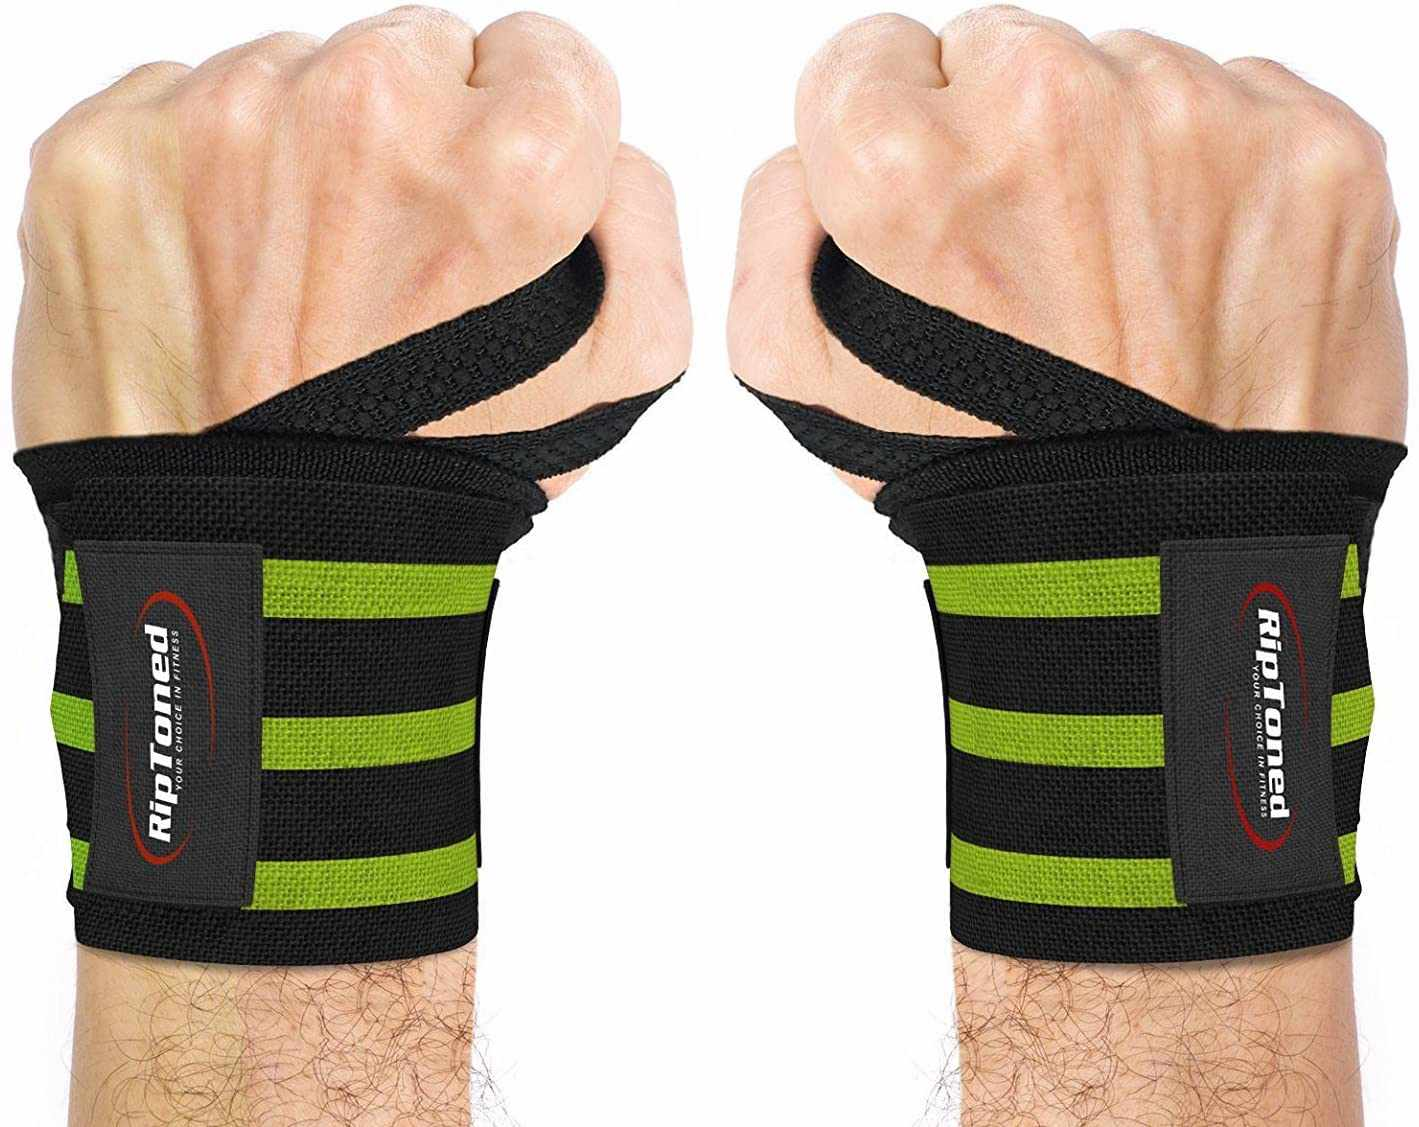 Weight Lifting Wrist Wraps Power Training Gym Workout Support Strap Extra Strong